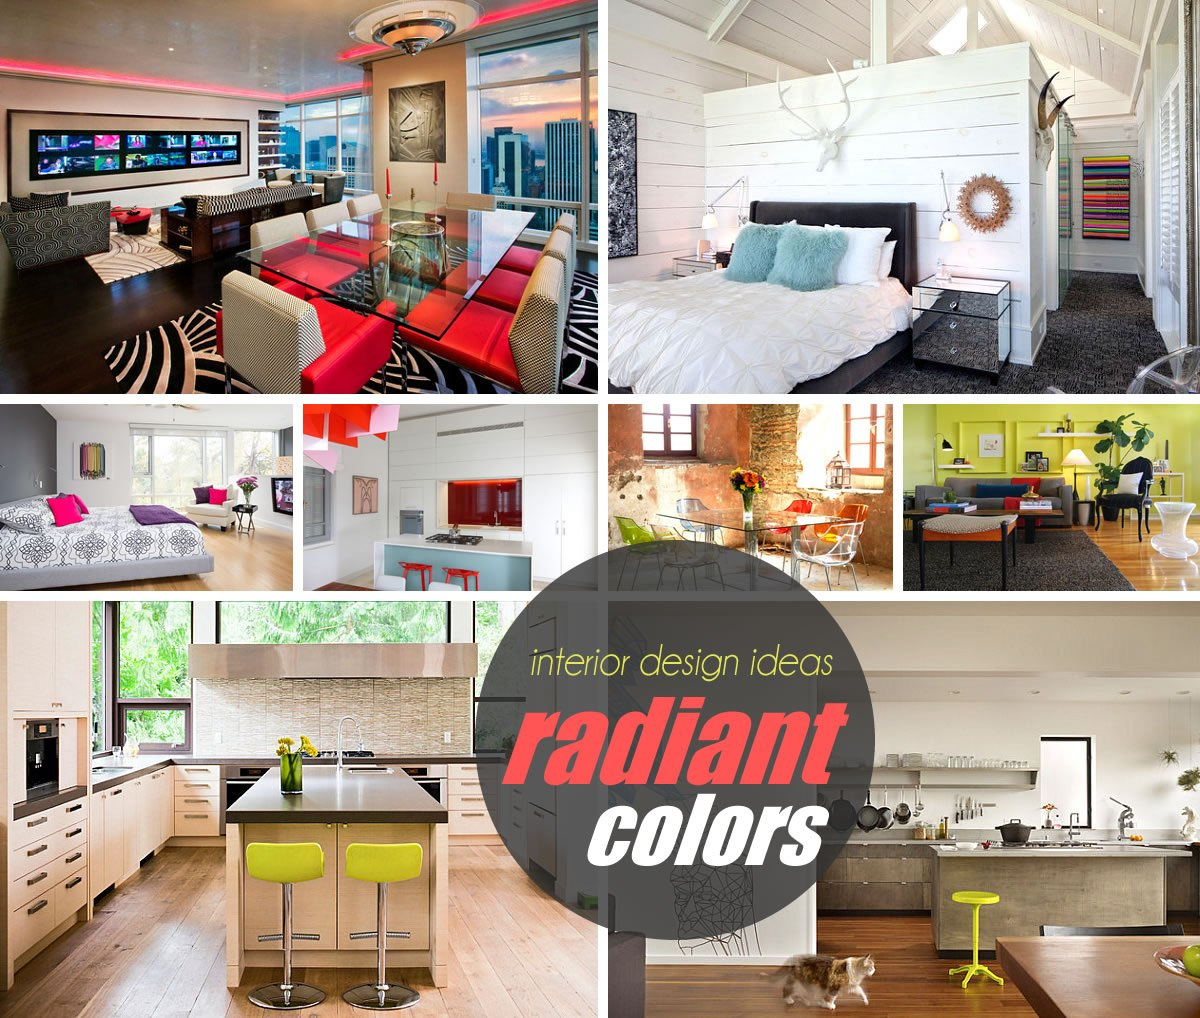 radiant colors home design 20 Spaces Featuring Radiant Color in Interior Design